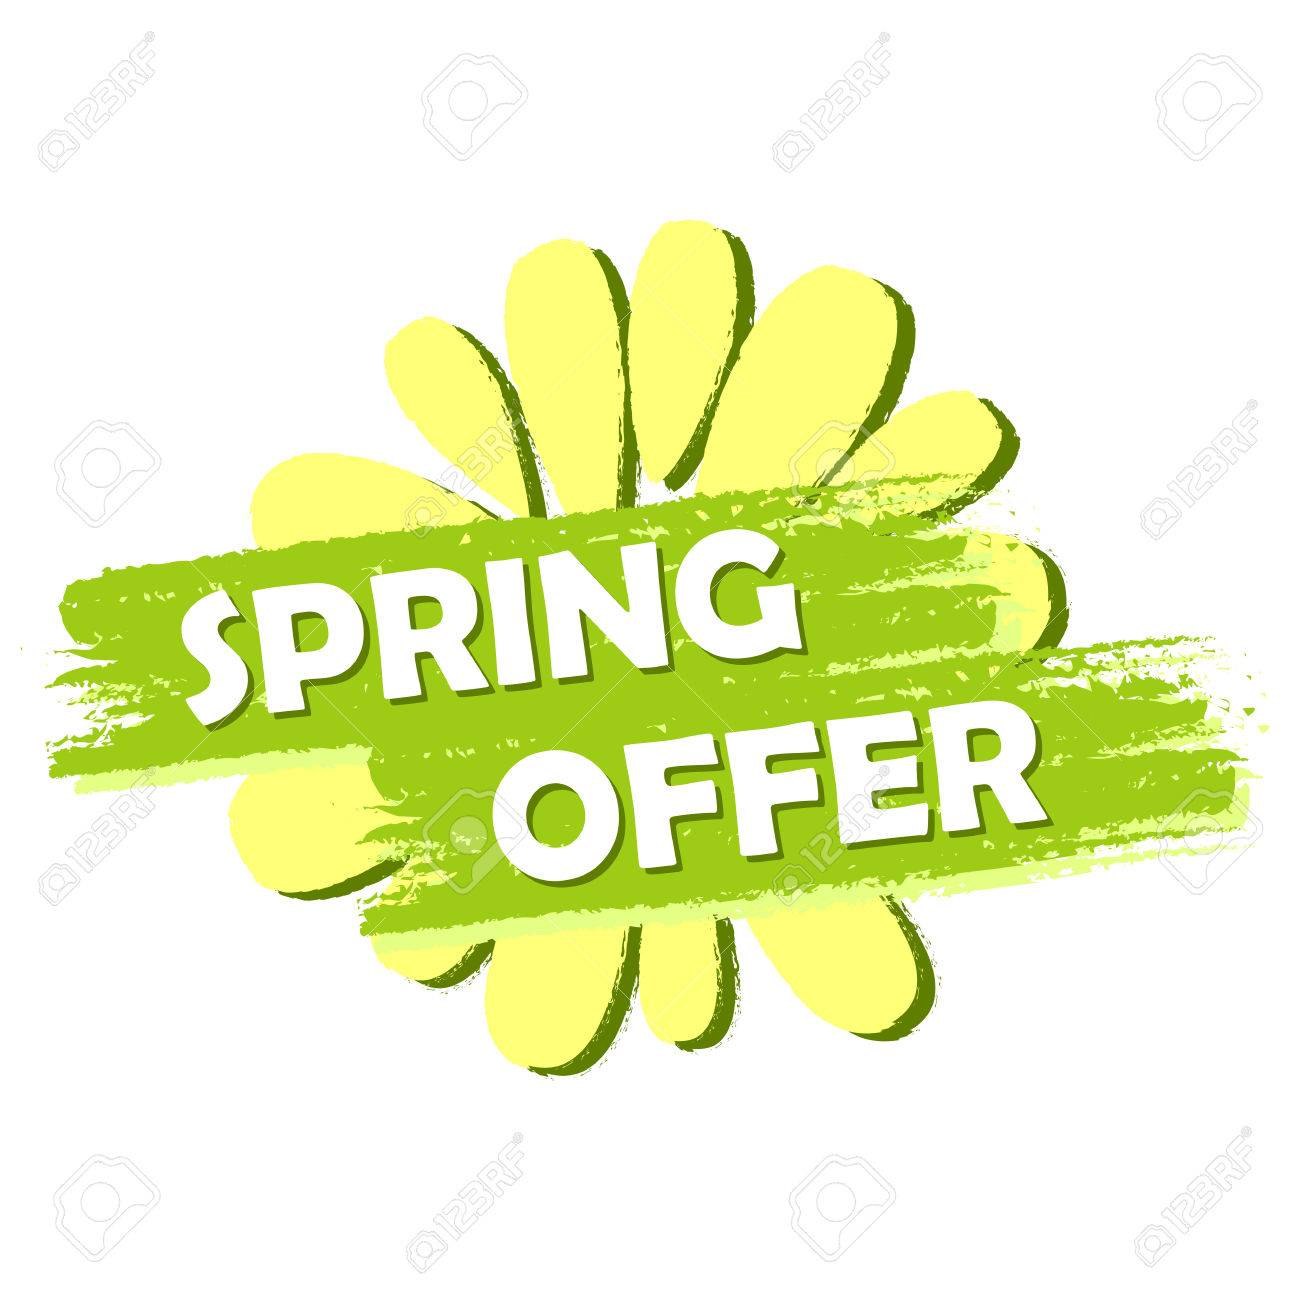 Spring offer banner text and flower symbol in green drawn label spring offer banner text and flower symbol in green drawn label business shopping seasonal biocorpaavc Choice Image